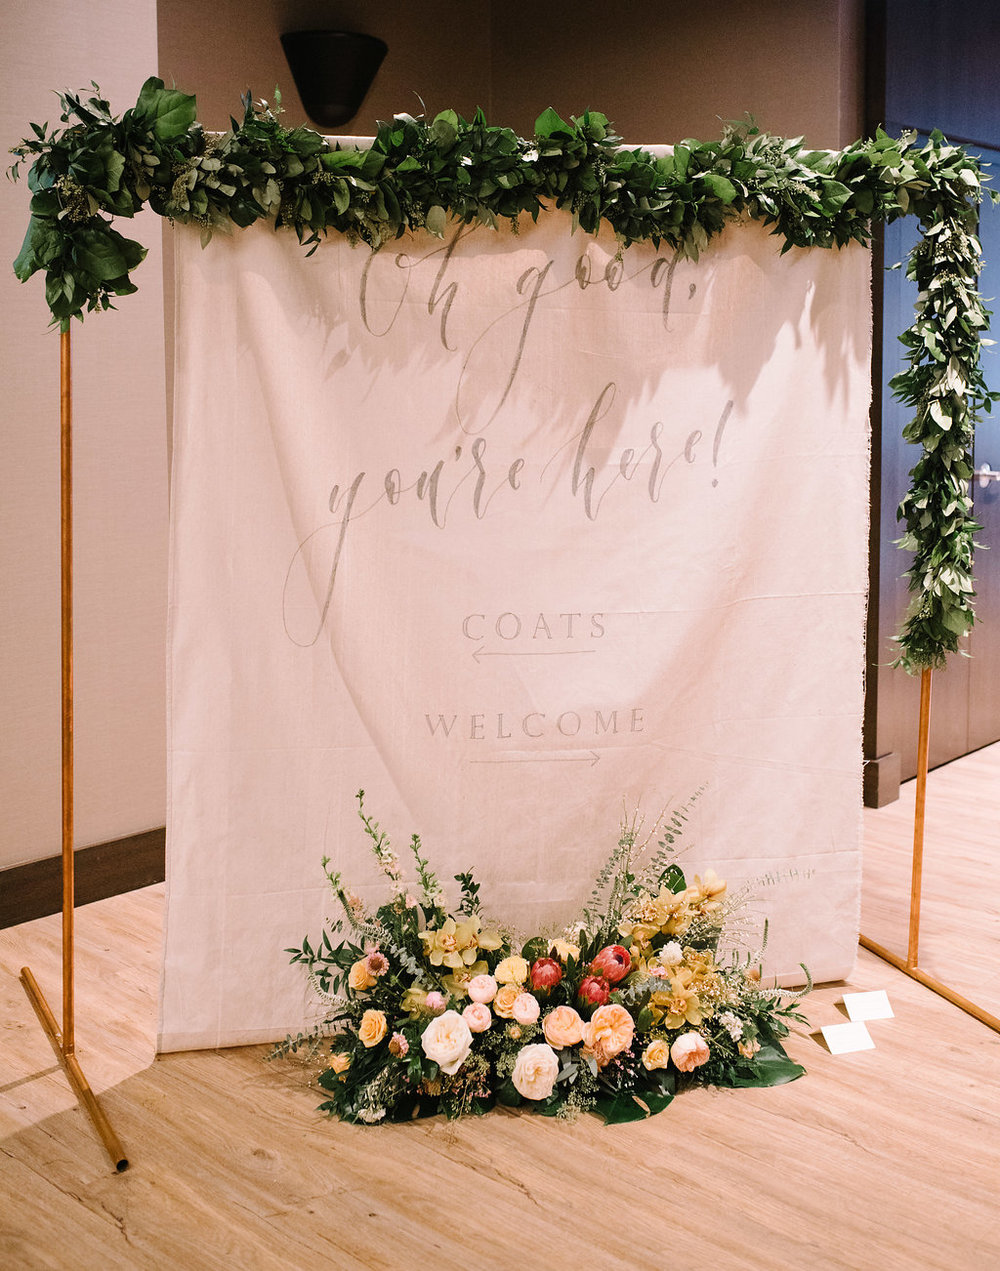 Photography by: Sarah Vaughan / Flowers by: Flowers by Janie / Signage by: Art + Alexander